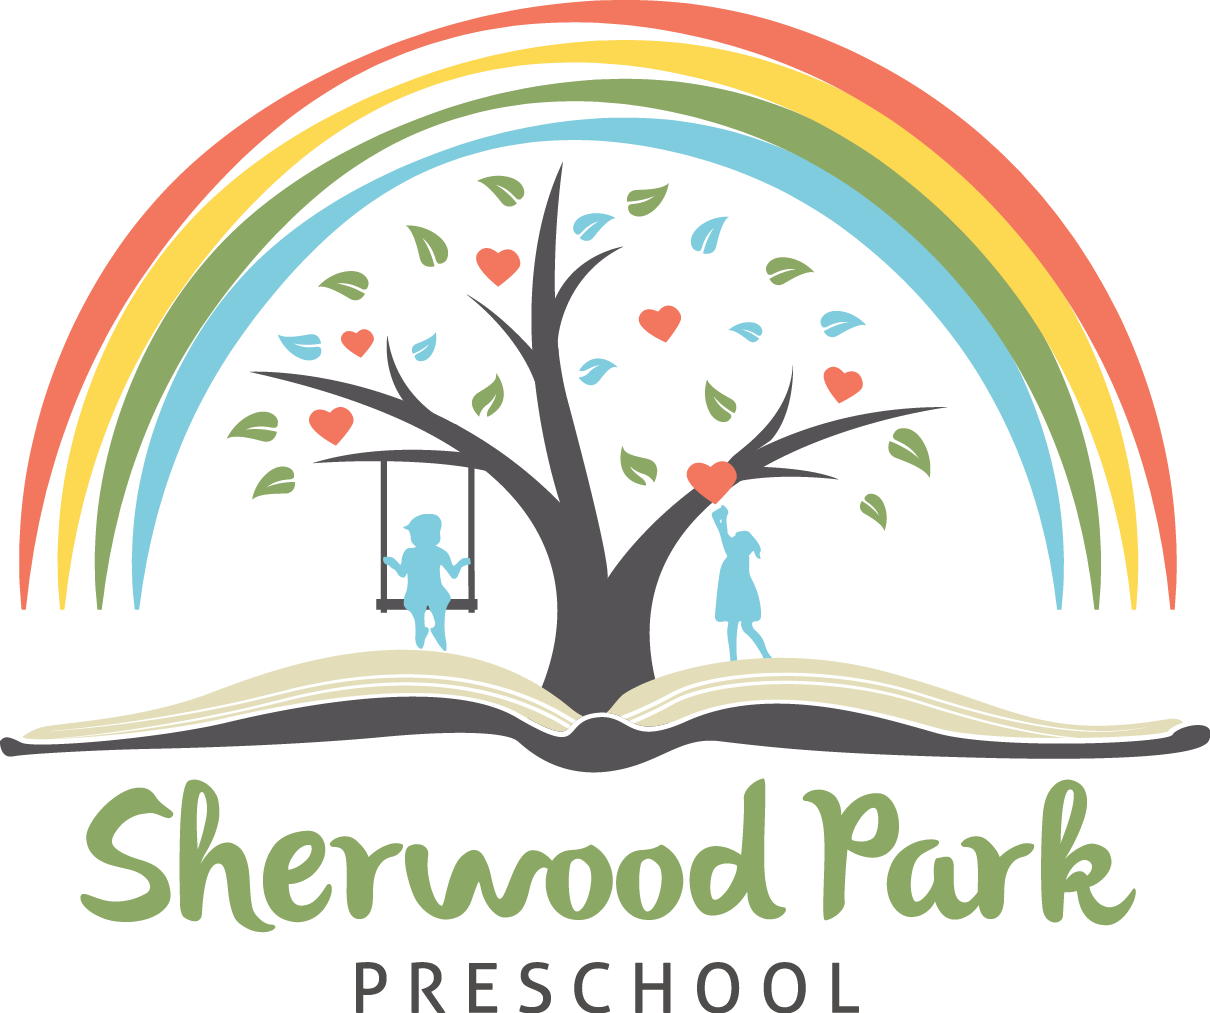 Fees sherwood park. Preschool clipart playground